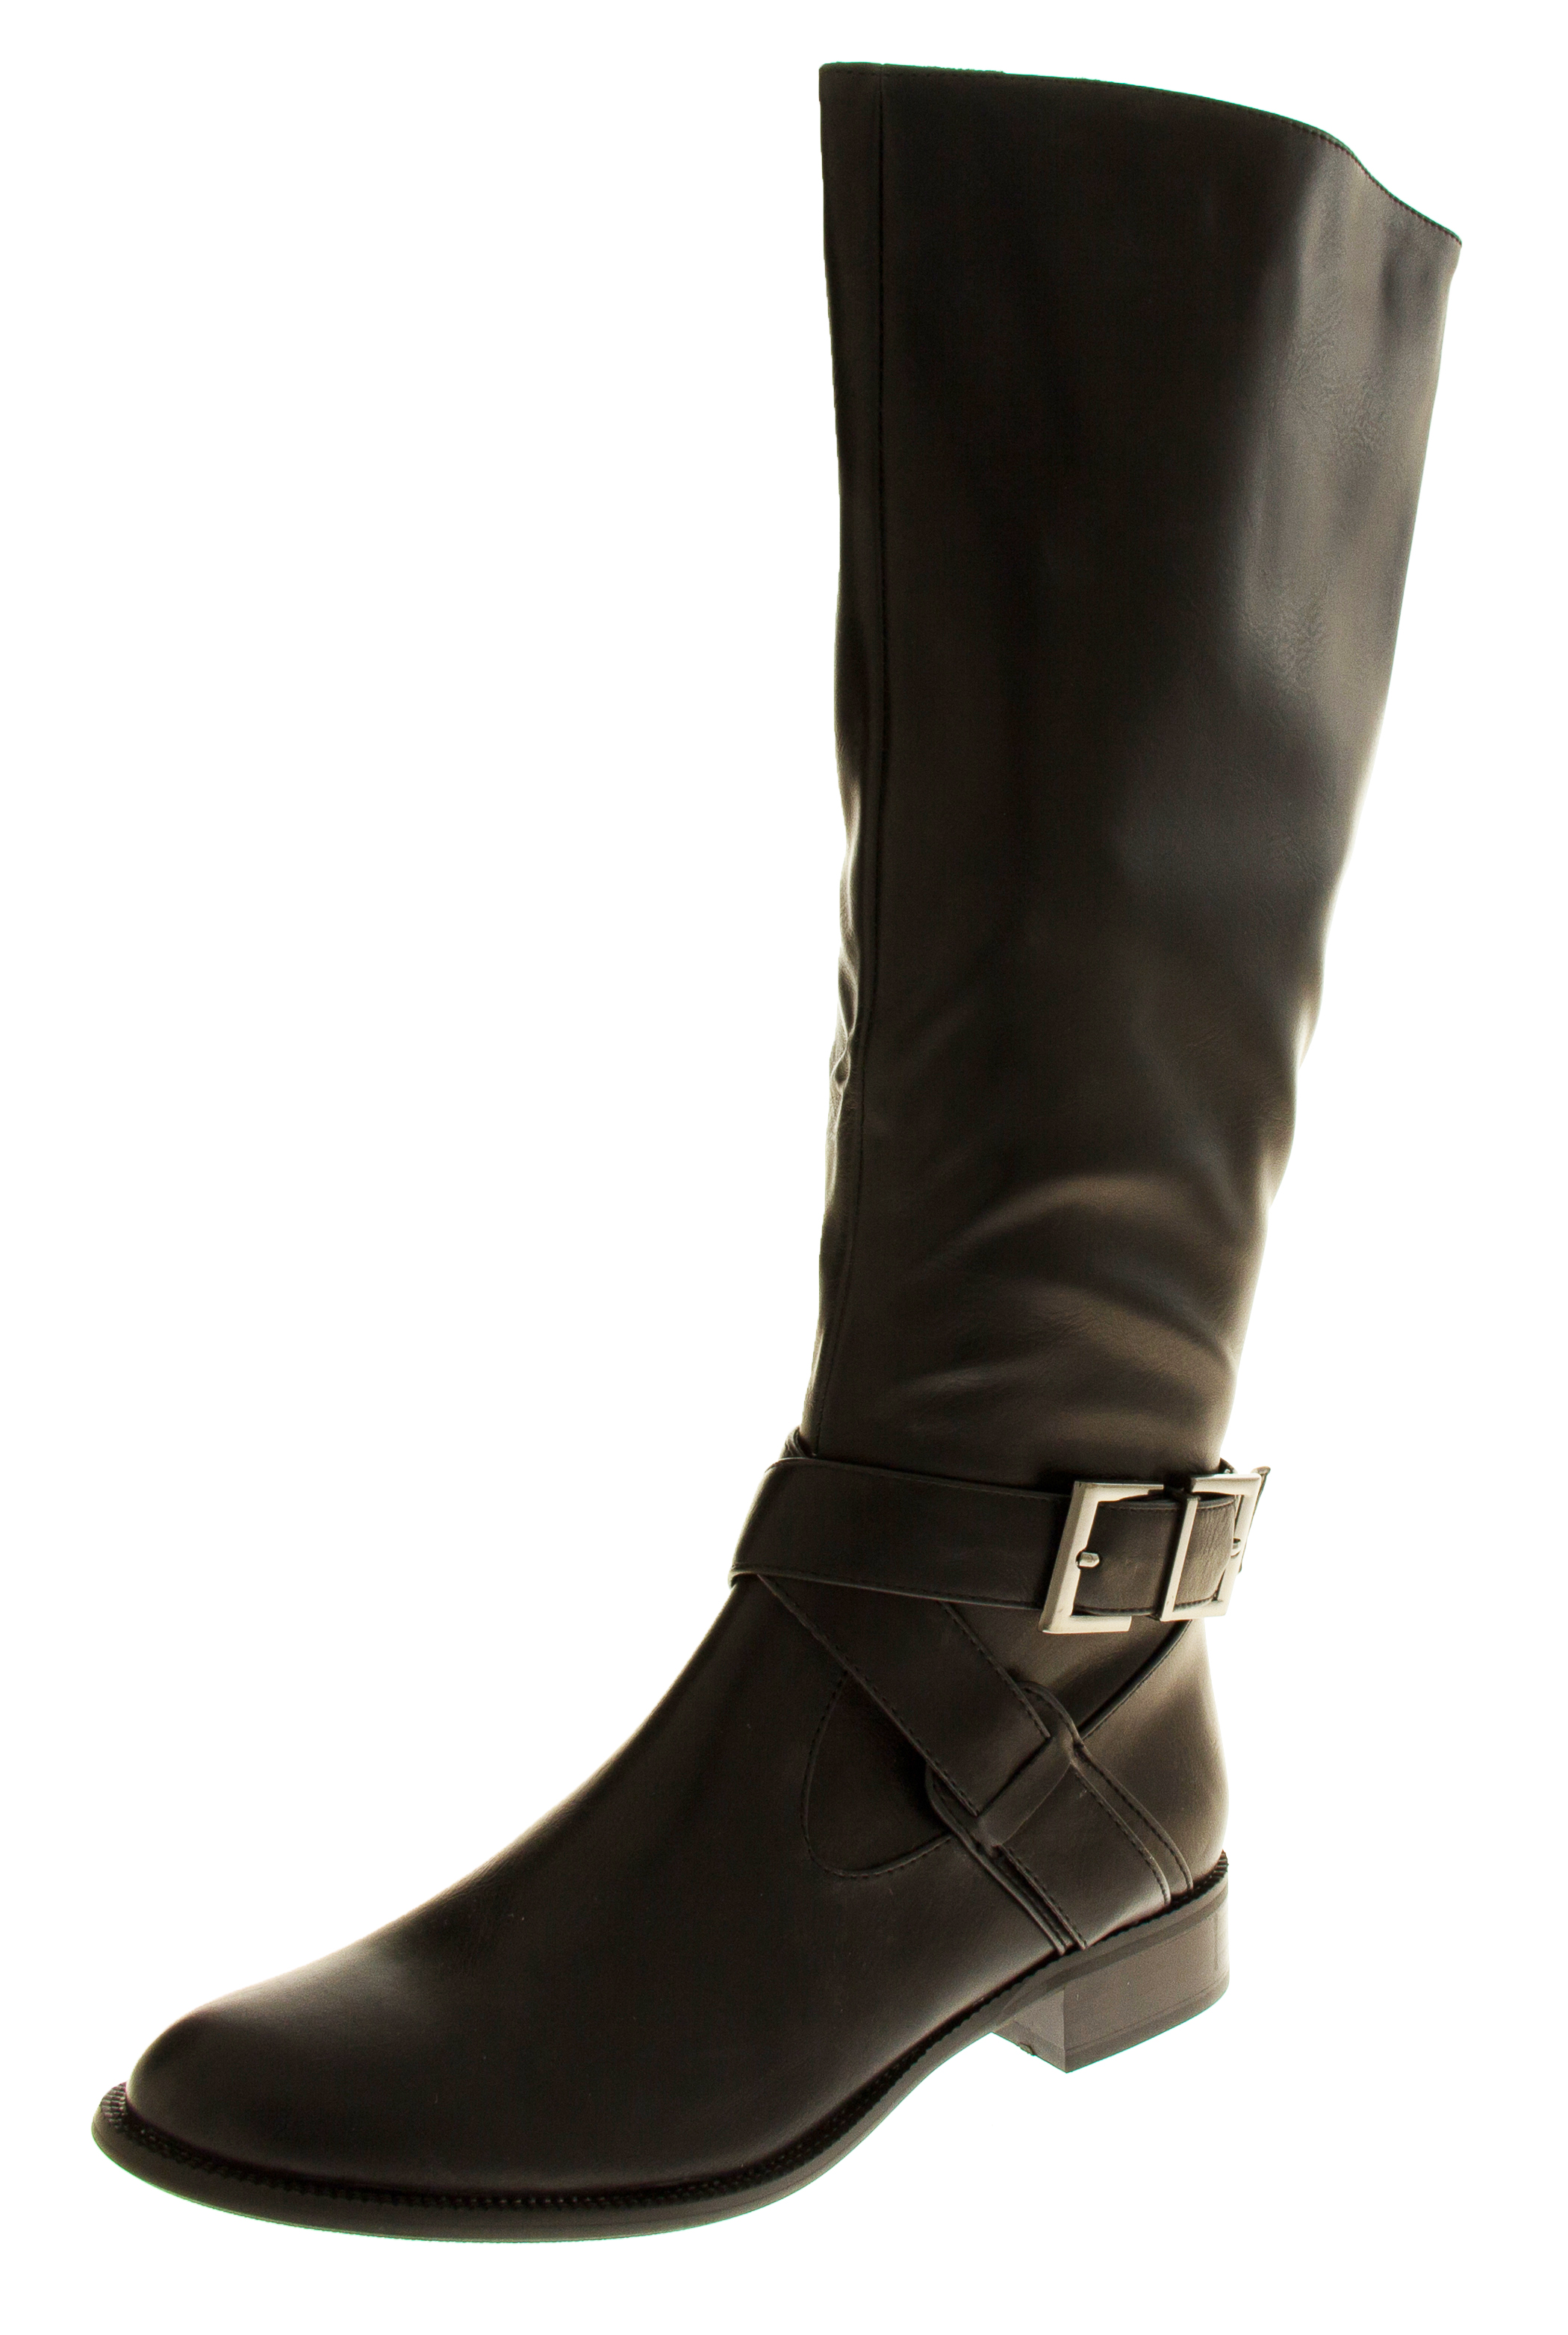 Womens Boots Low Heeled Flat Knee High Work Boot Office